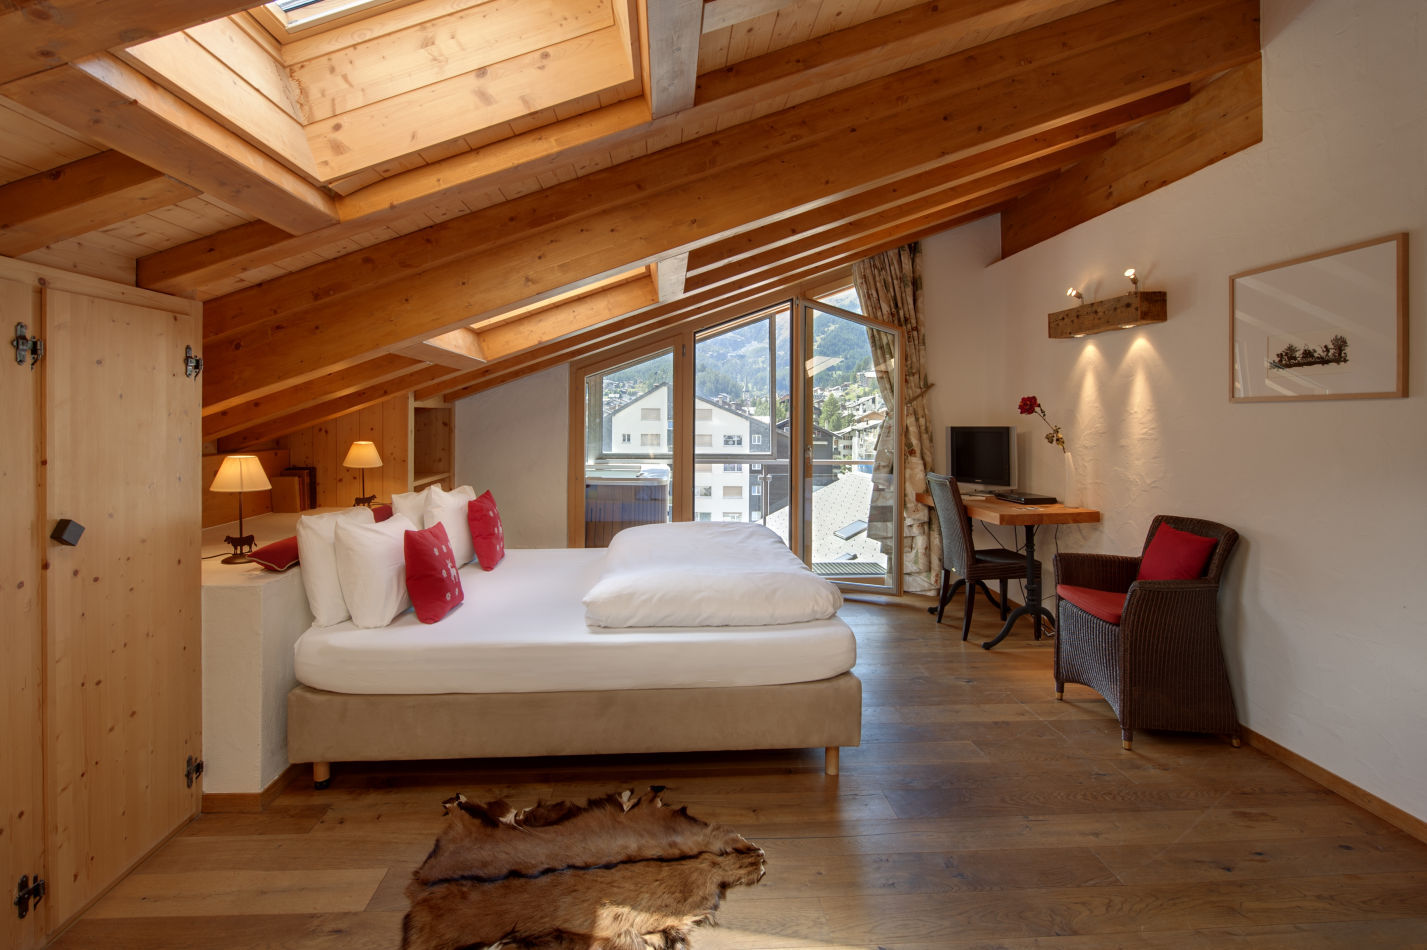 zermatt-lodge-2013-008